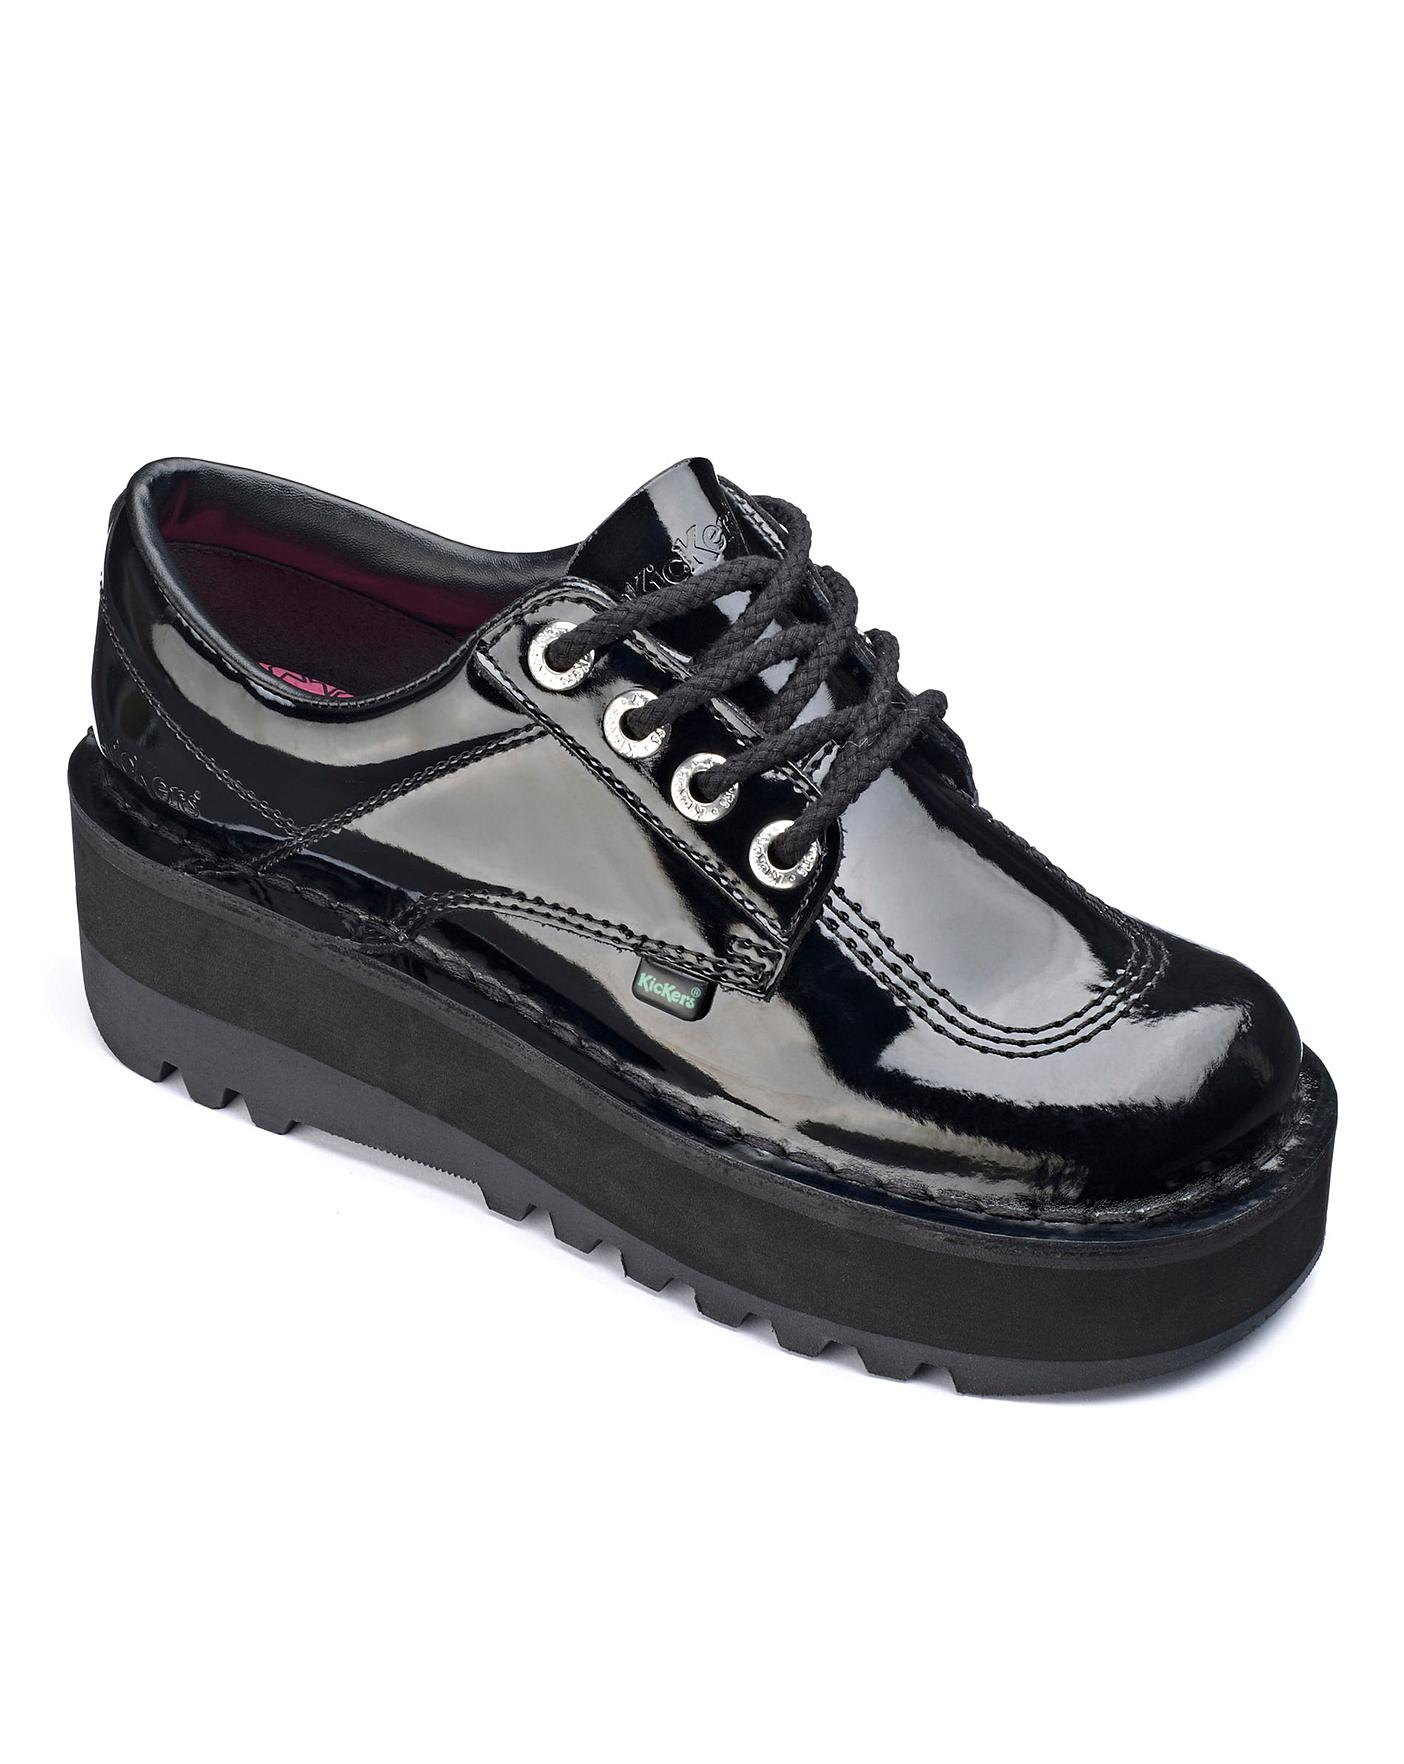 Kickers Lace Up Shoes D Fit | Oxendales